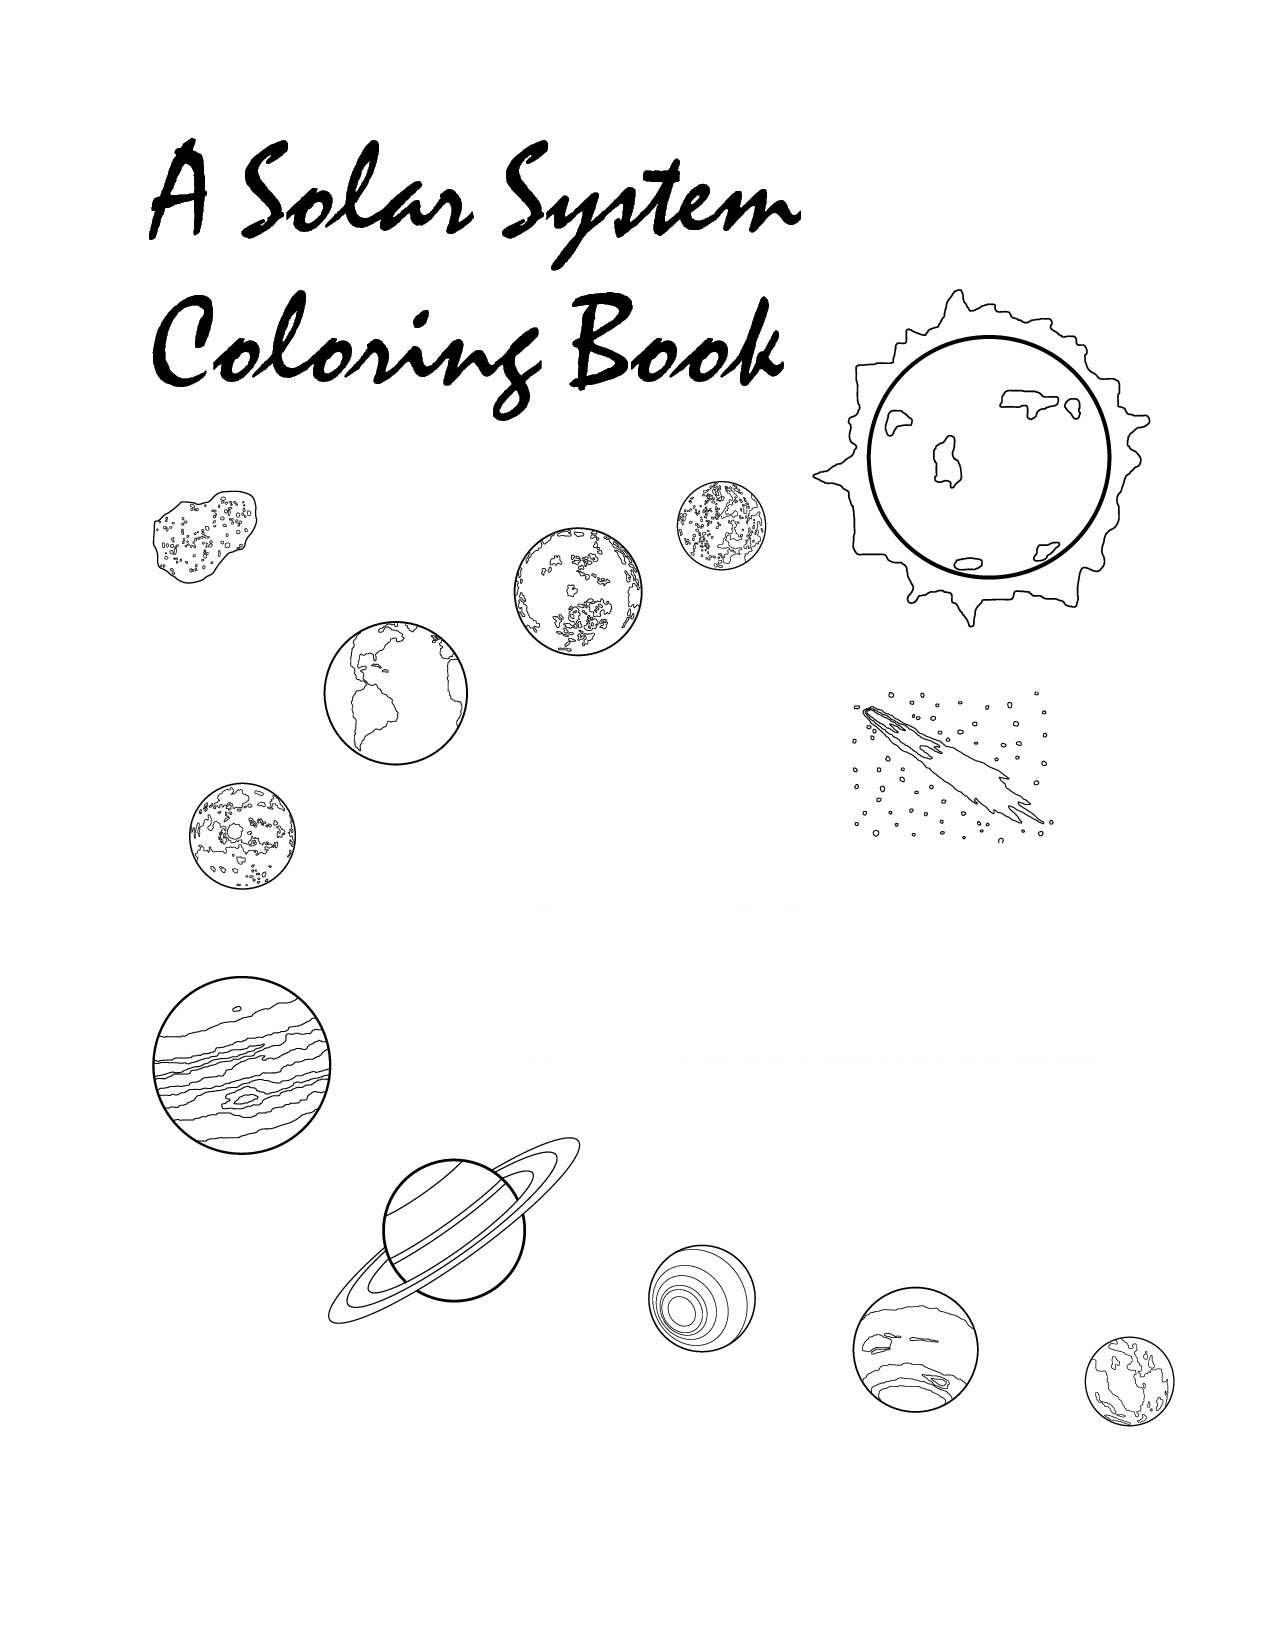 printable solar system coloring pages for kids - Colour Worksheet For Kids